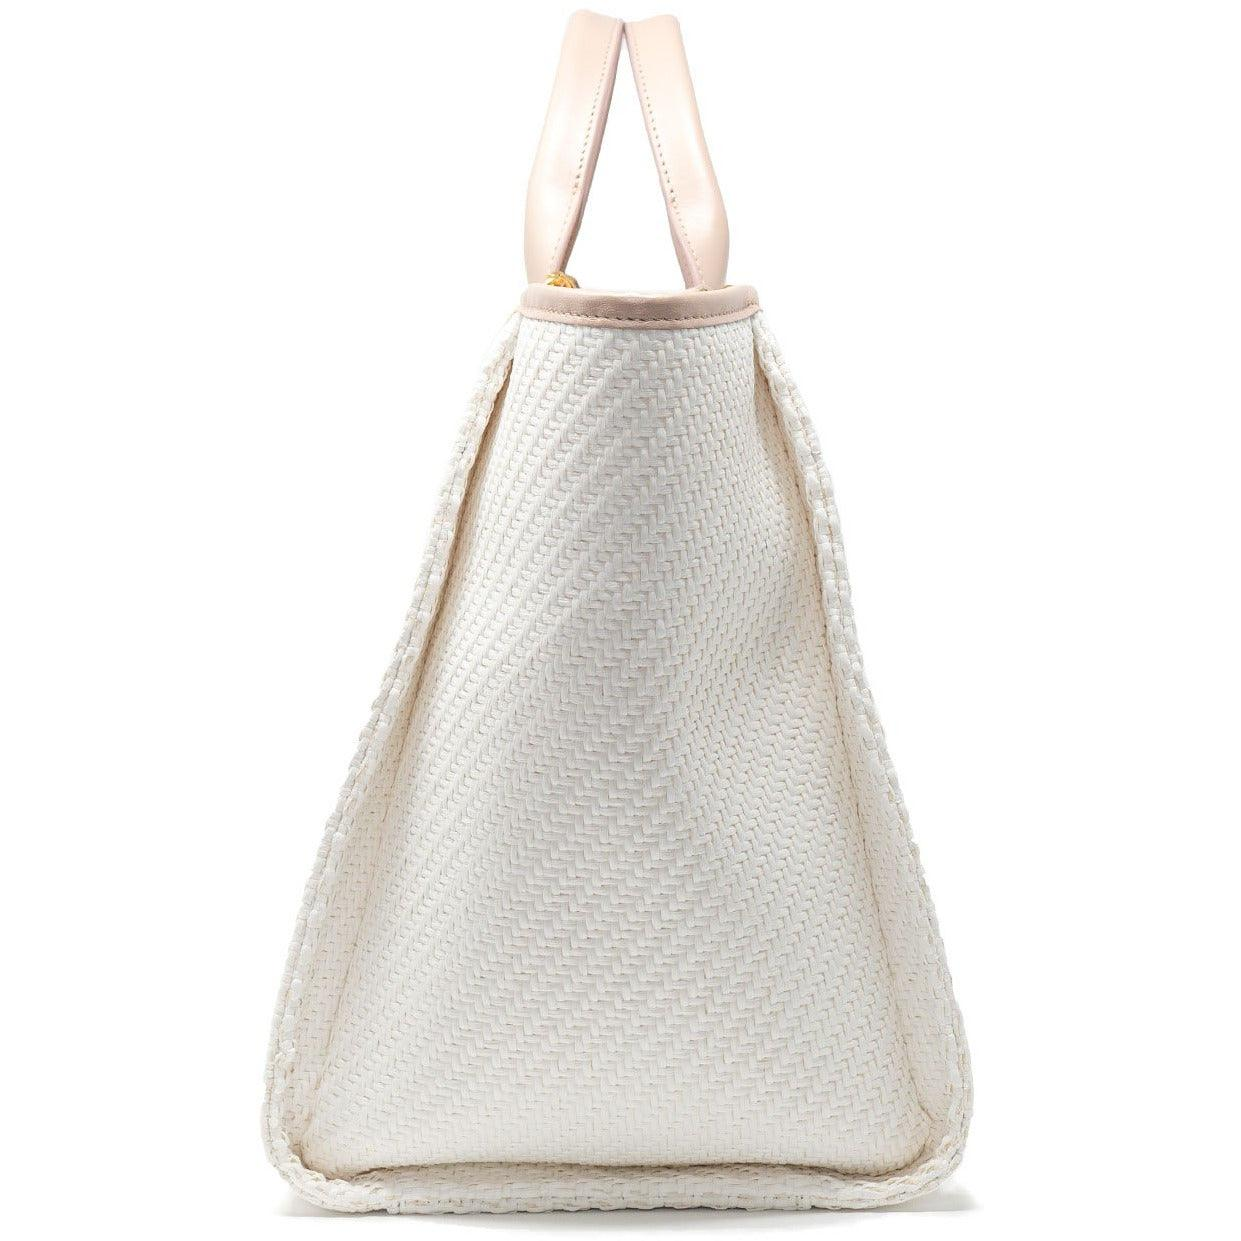 The Hamptons Large Shopping Bag in Vanilla Nude